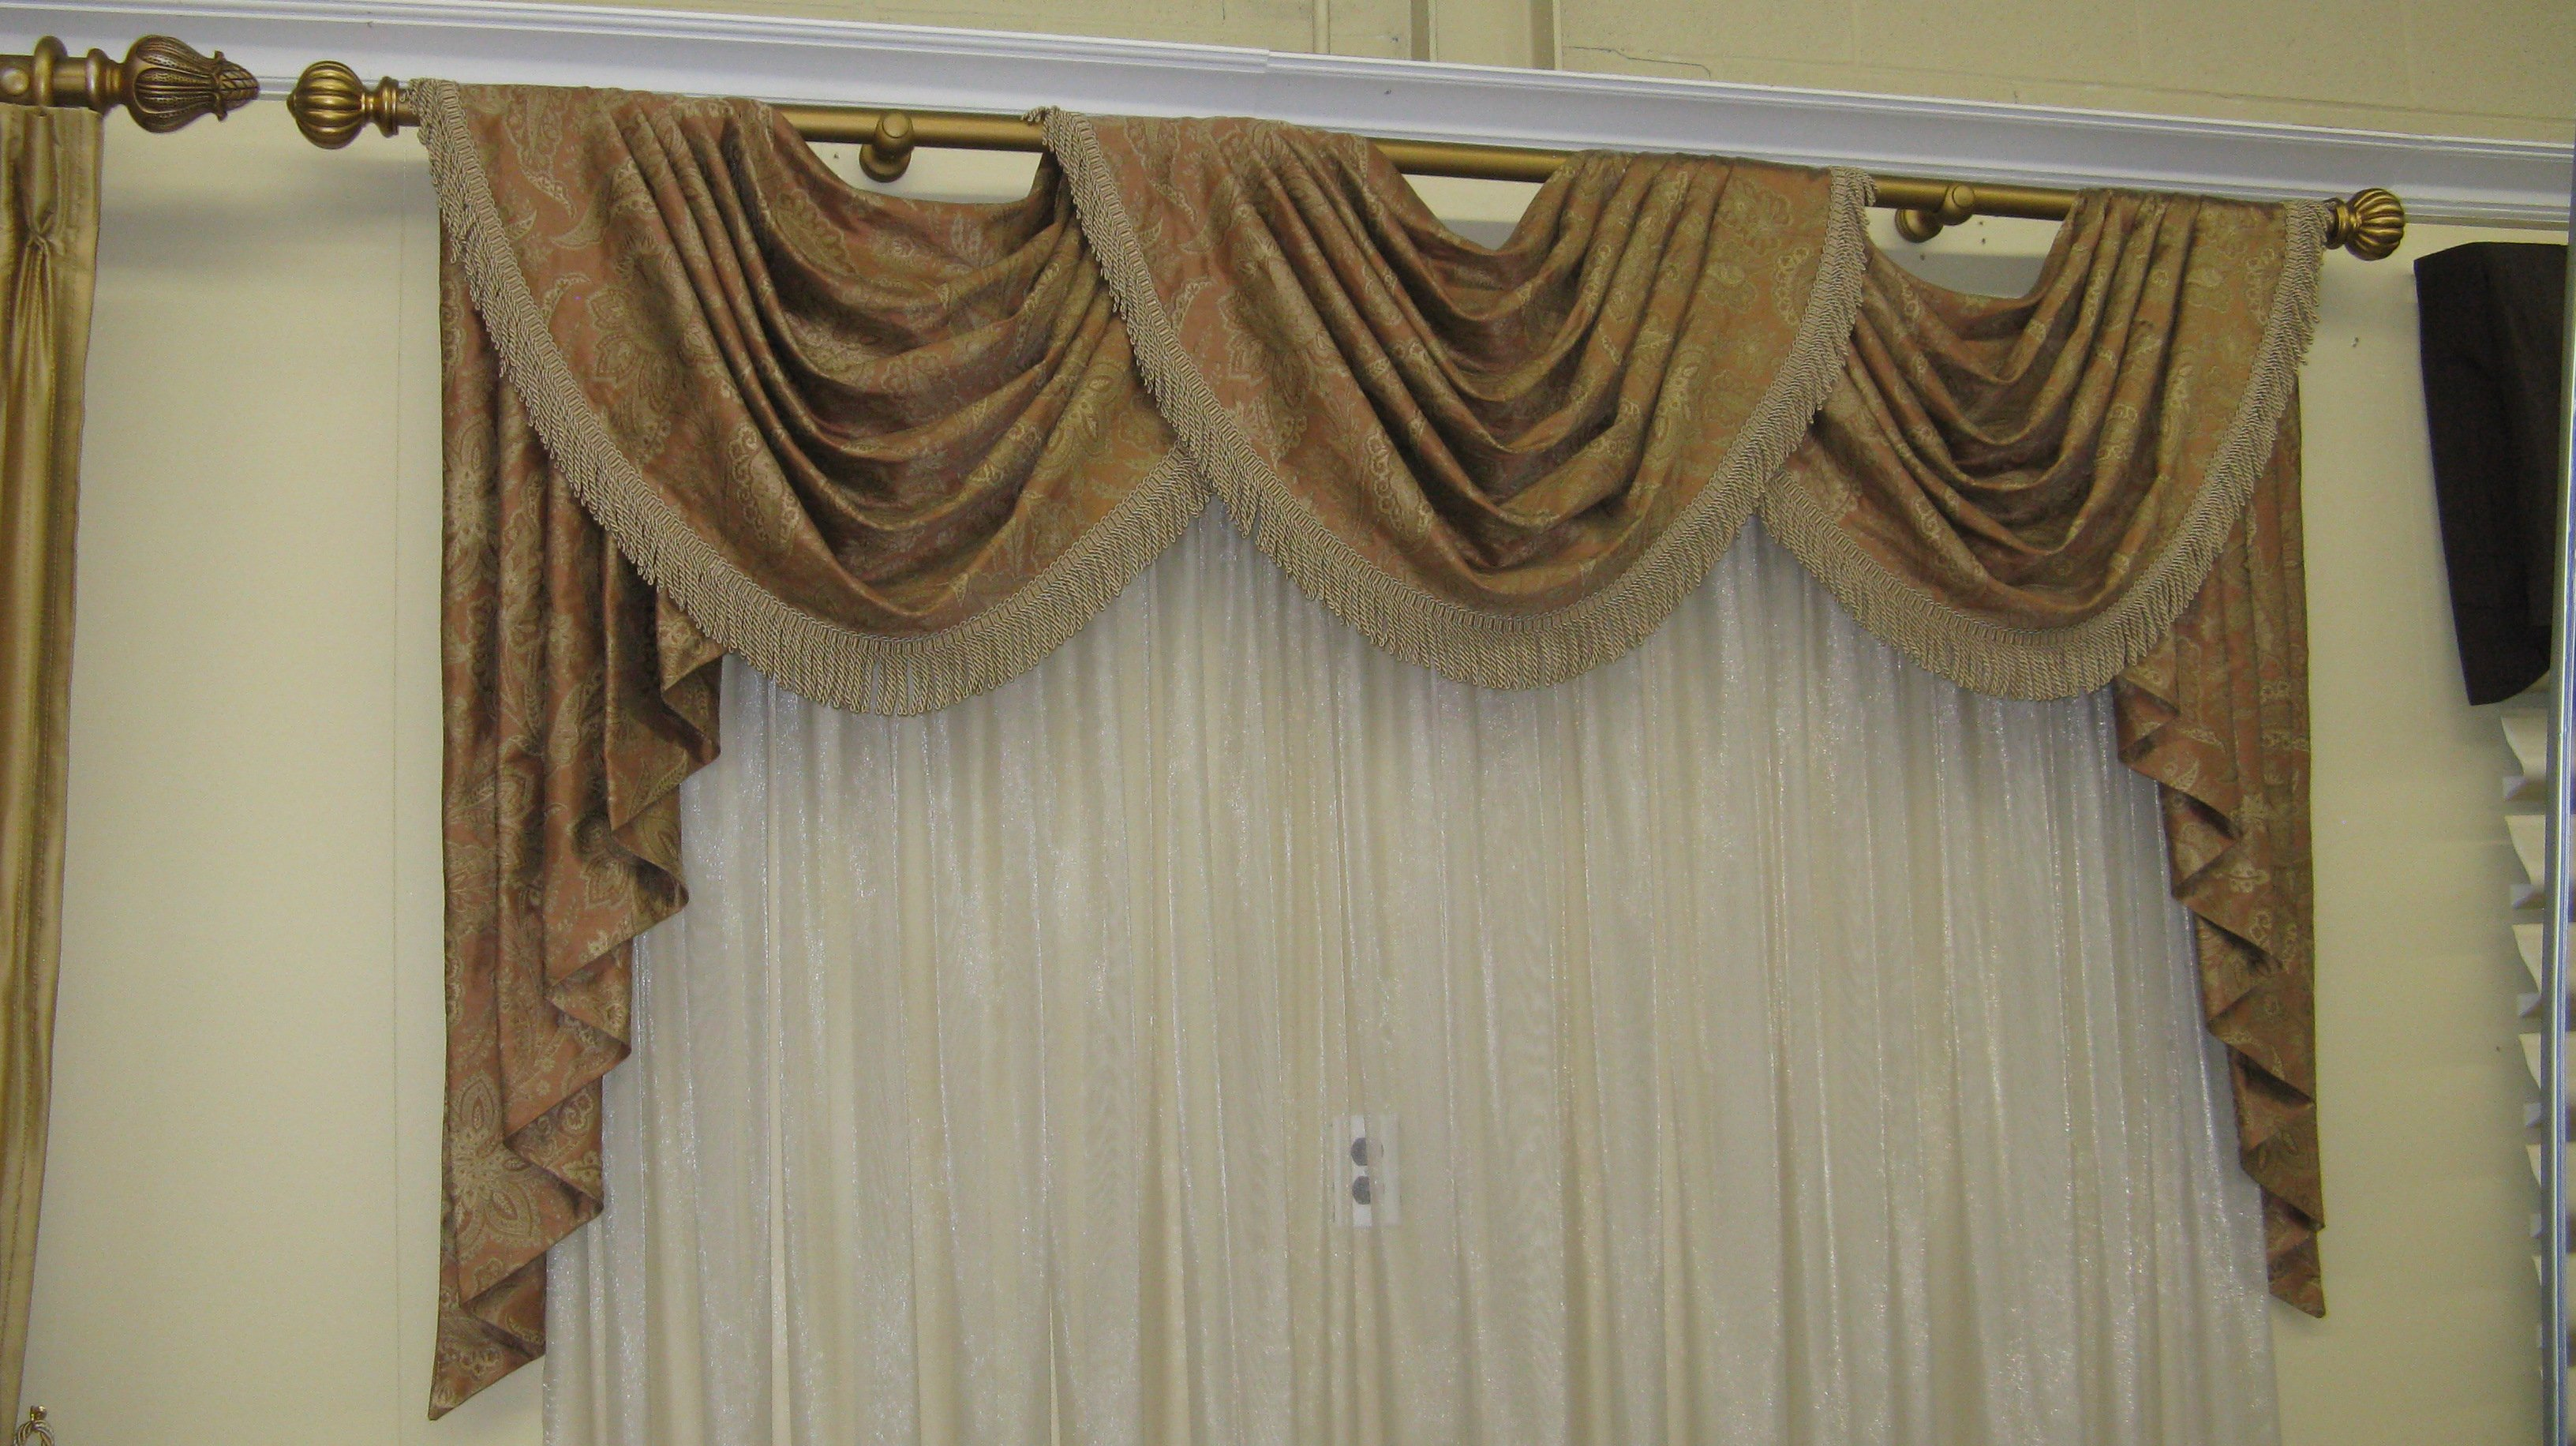 decorative black pelmet itm net swag all tassle colours individual voile curtain drapes swags new valance